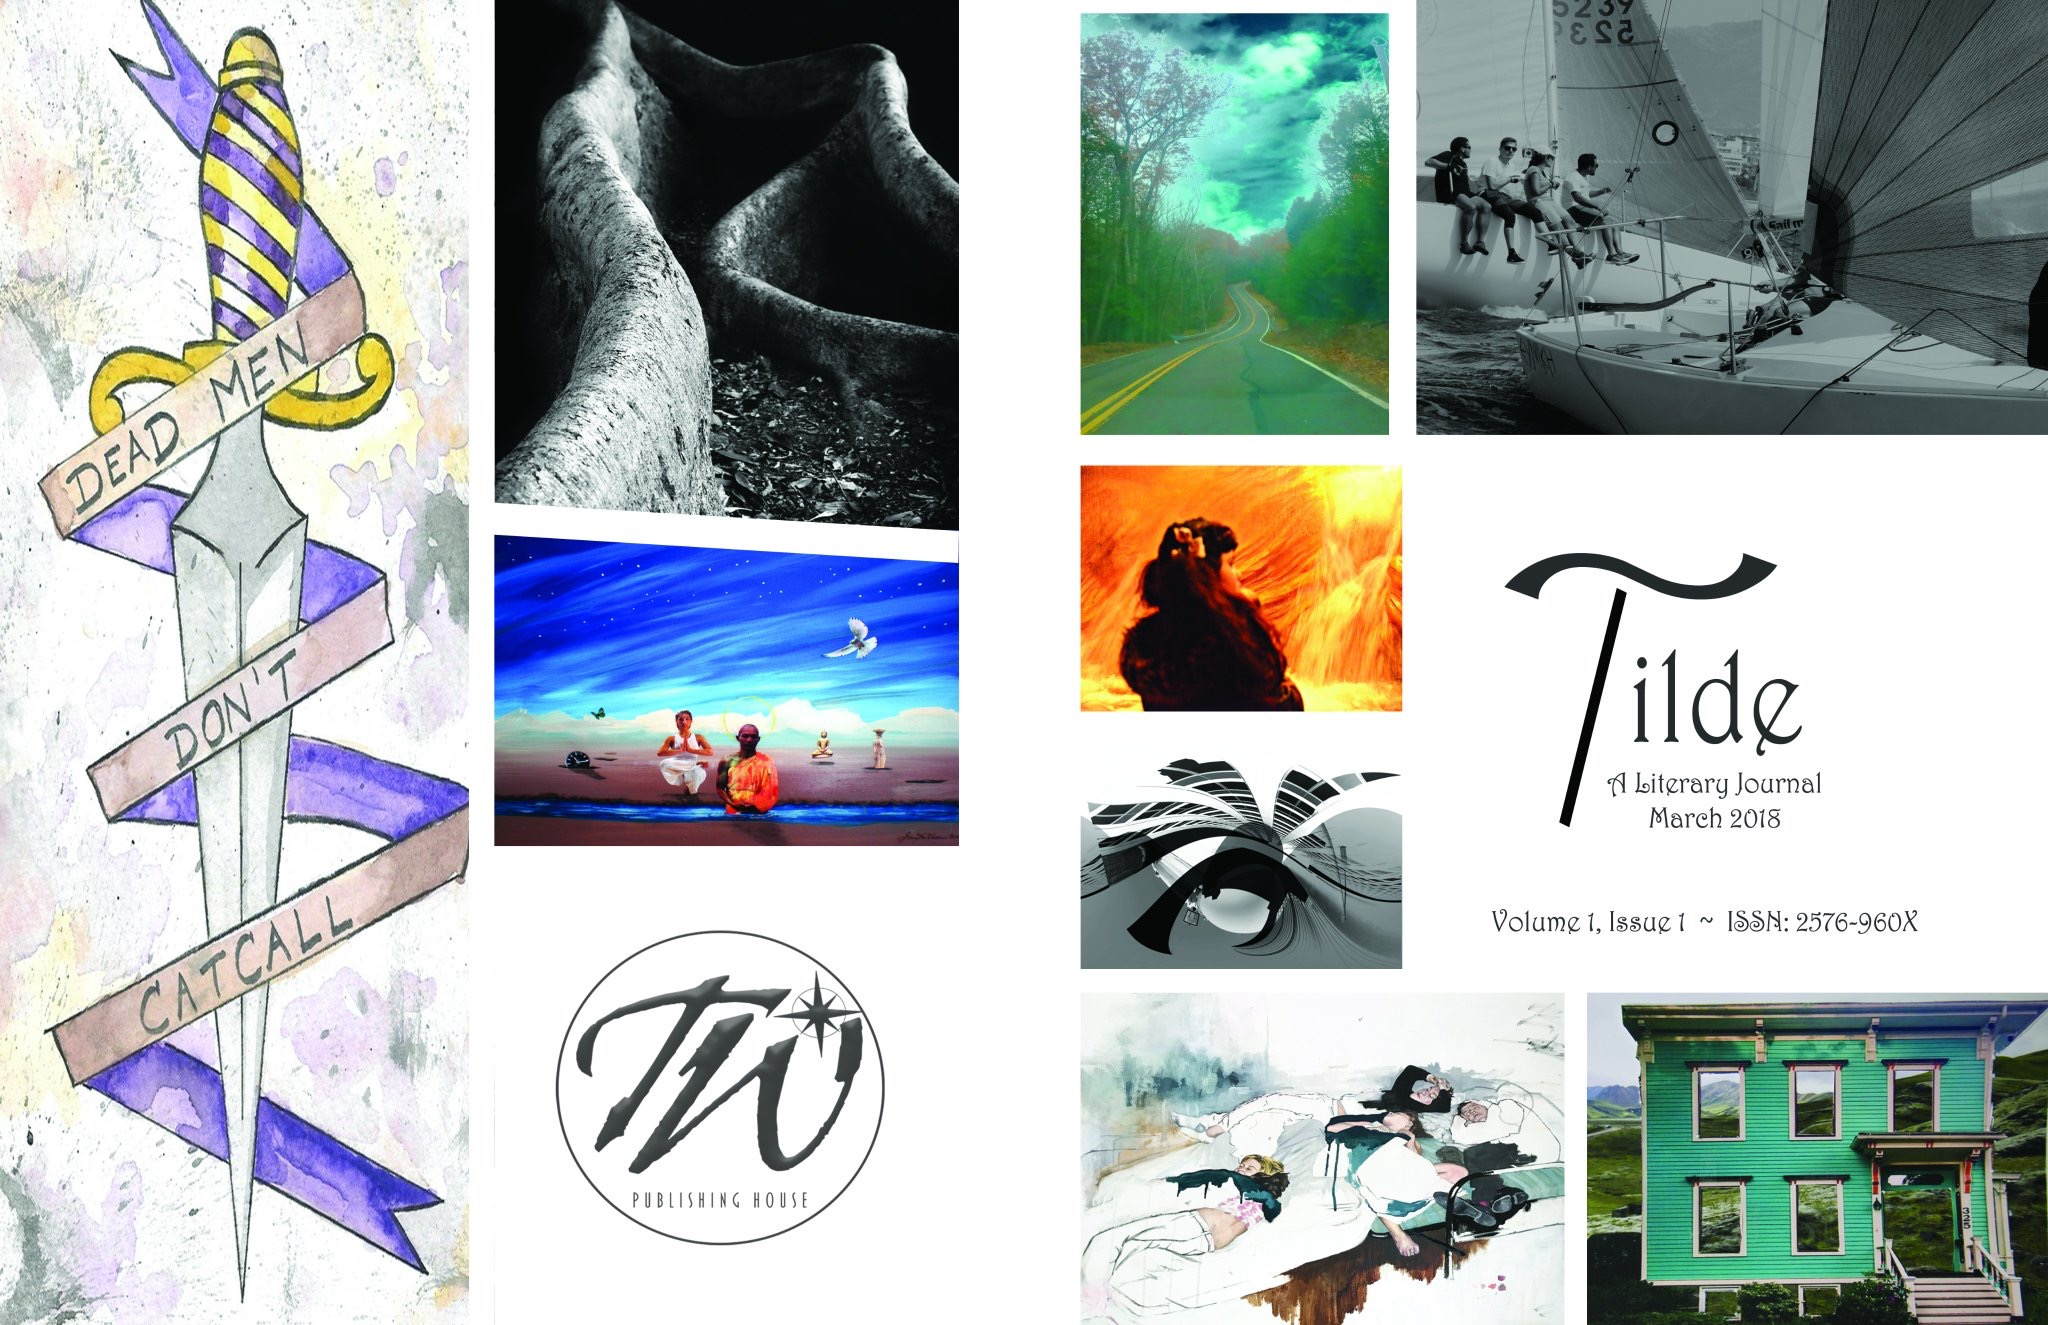 Tilde: A Literary Journal: Issue 1 spread